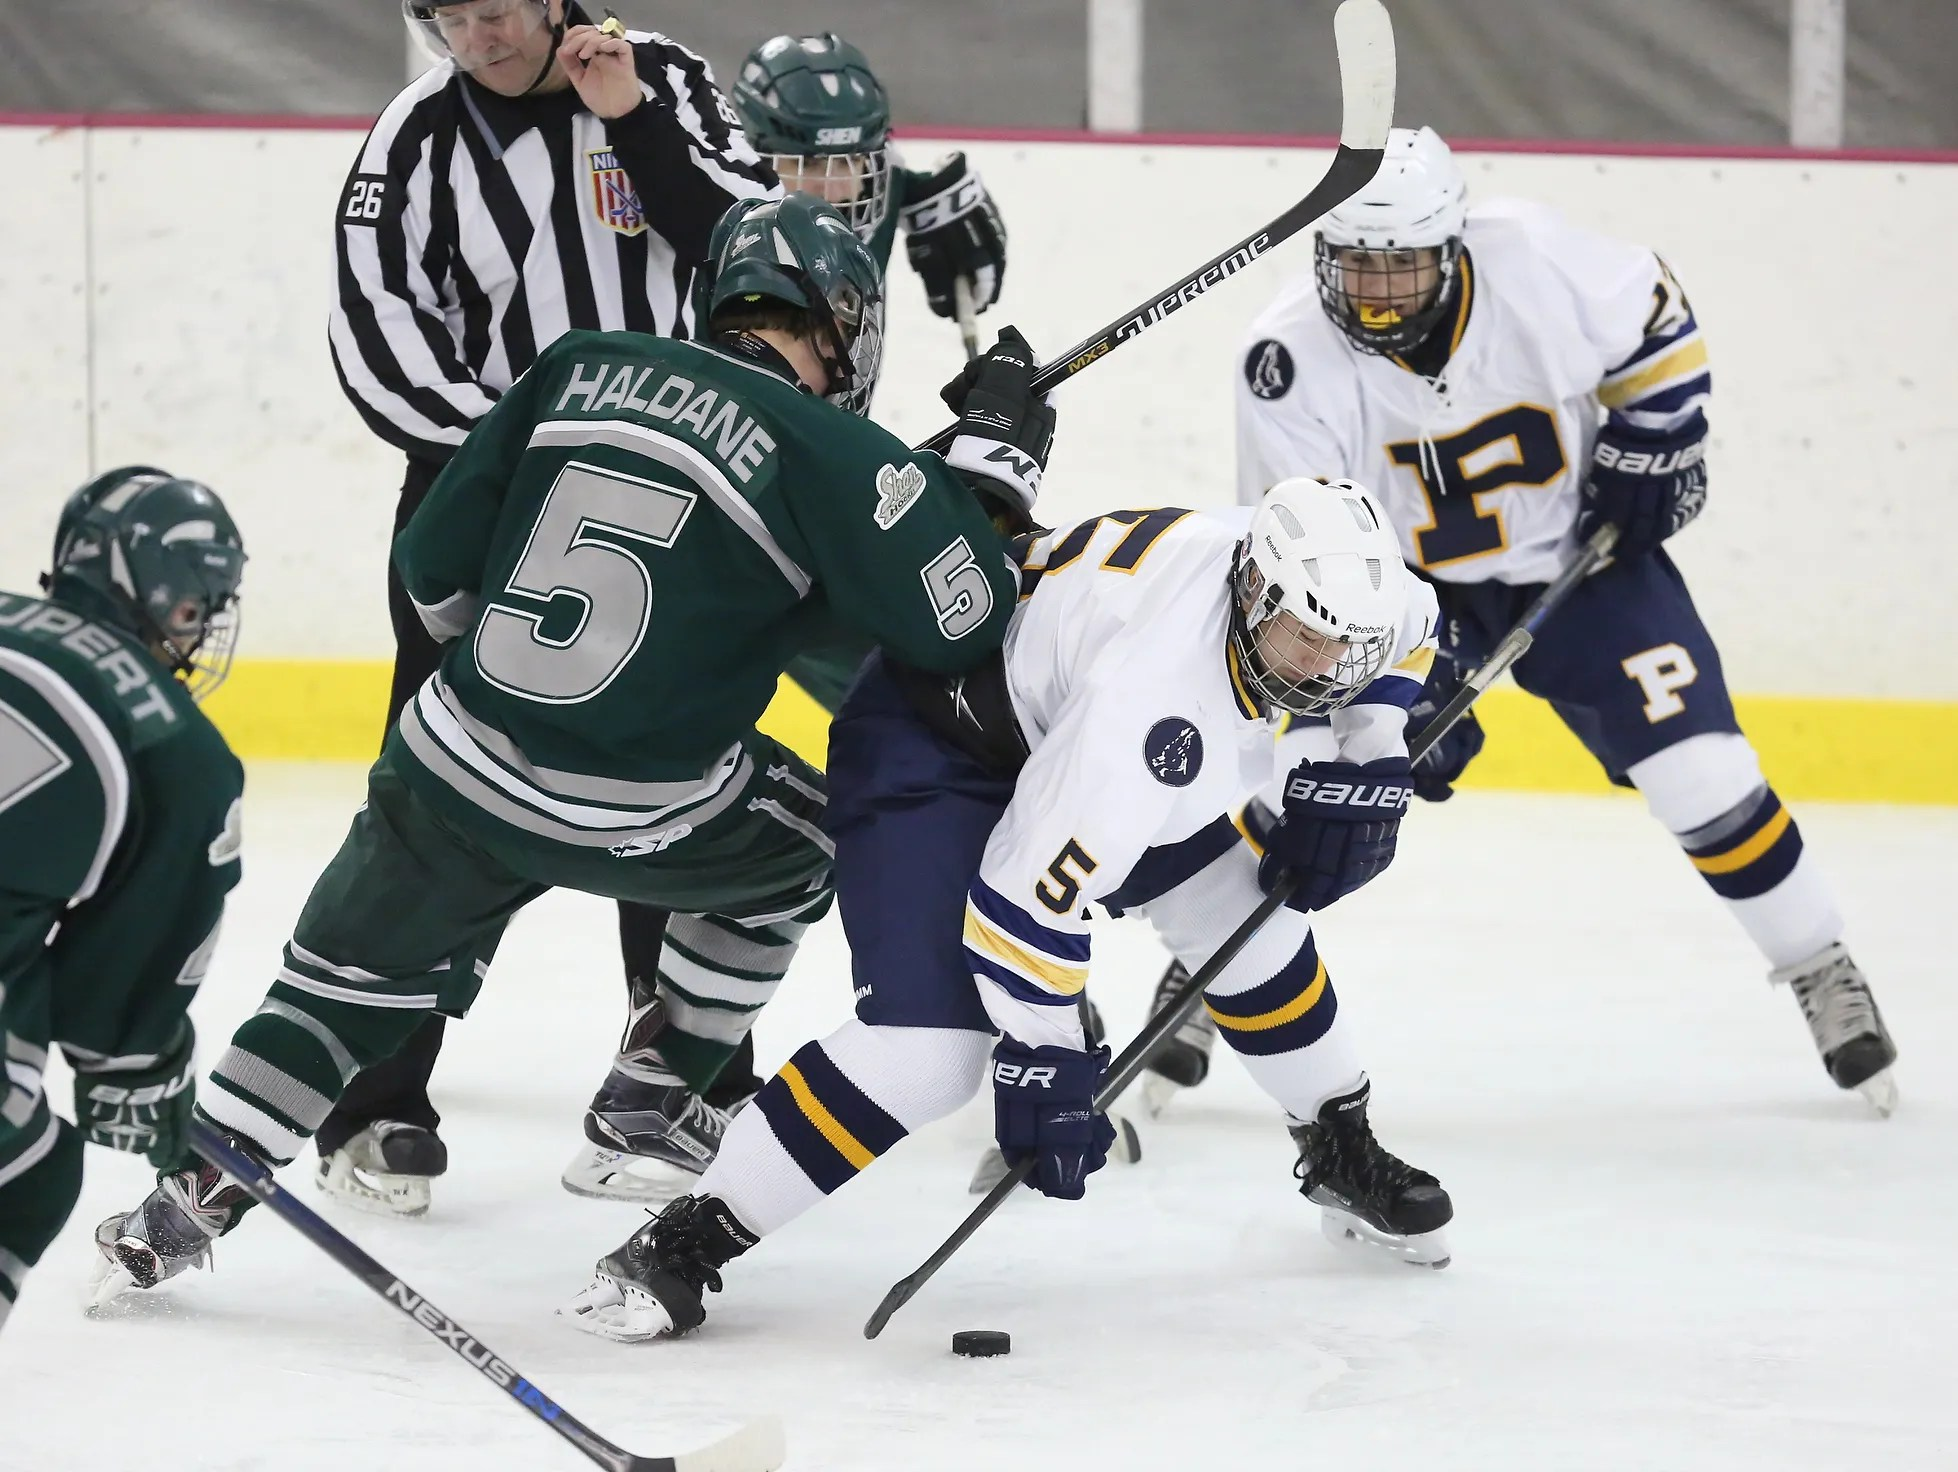 Section 1 is finally a hockey destination | USA TODAY High ...